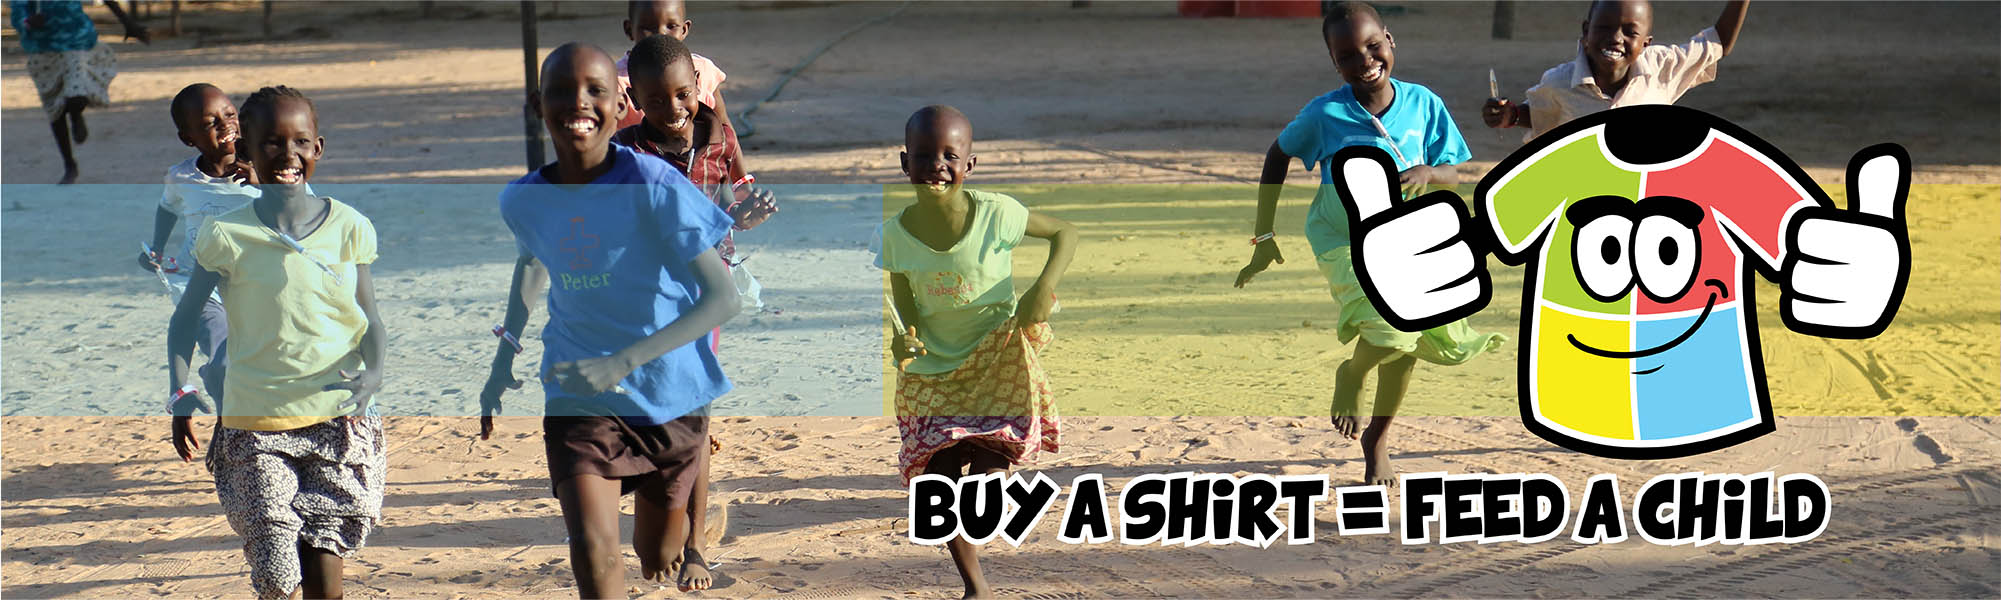 Charity Partnership with SERV: Buy a shirt = feed a child